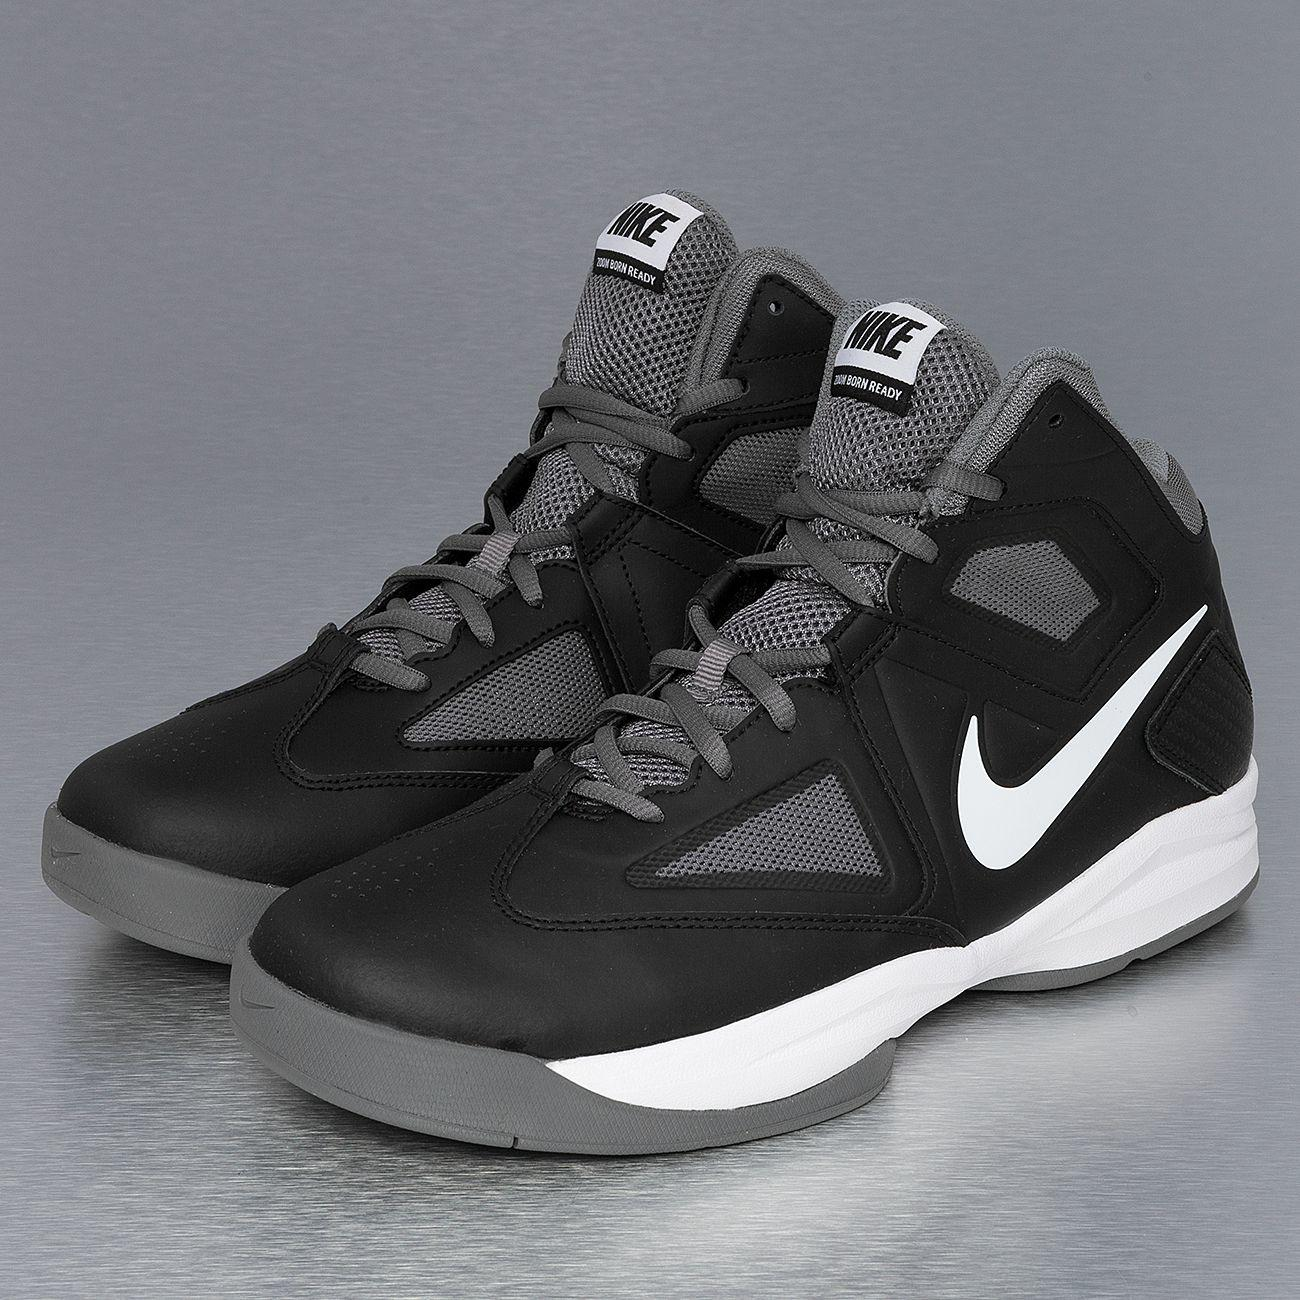 Nike Zoom Born Ready Basketball Shoes from def-shop.com  0ad153ffdf